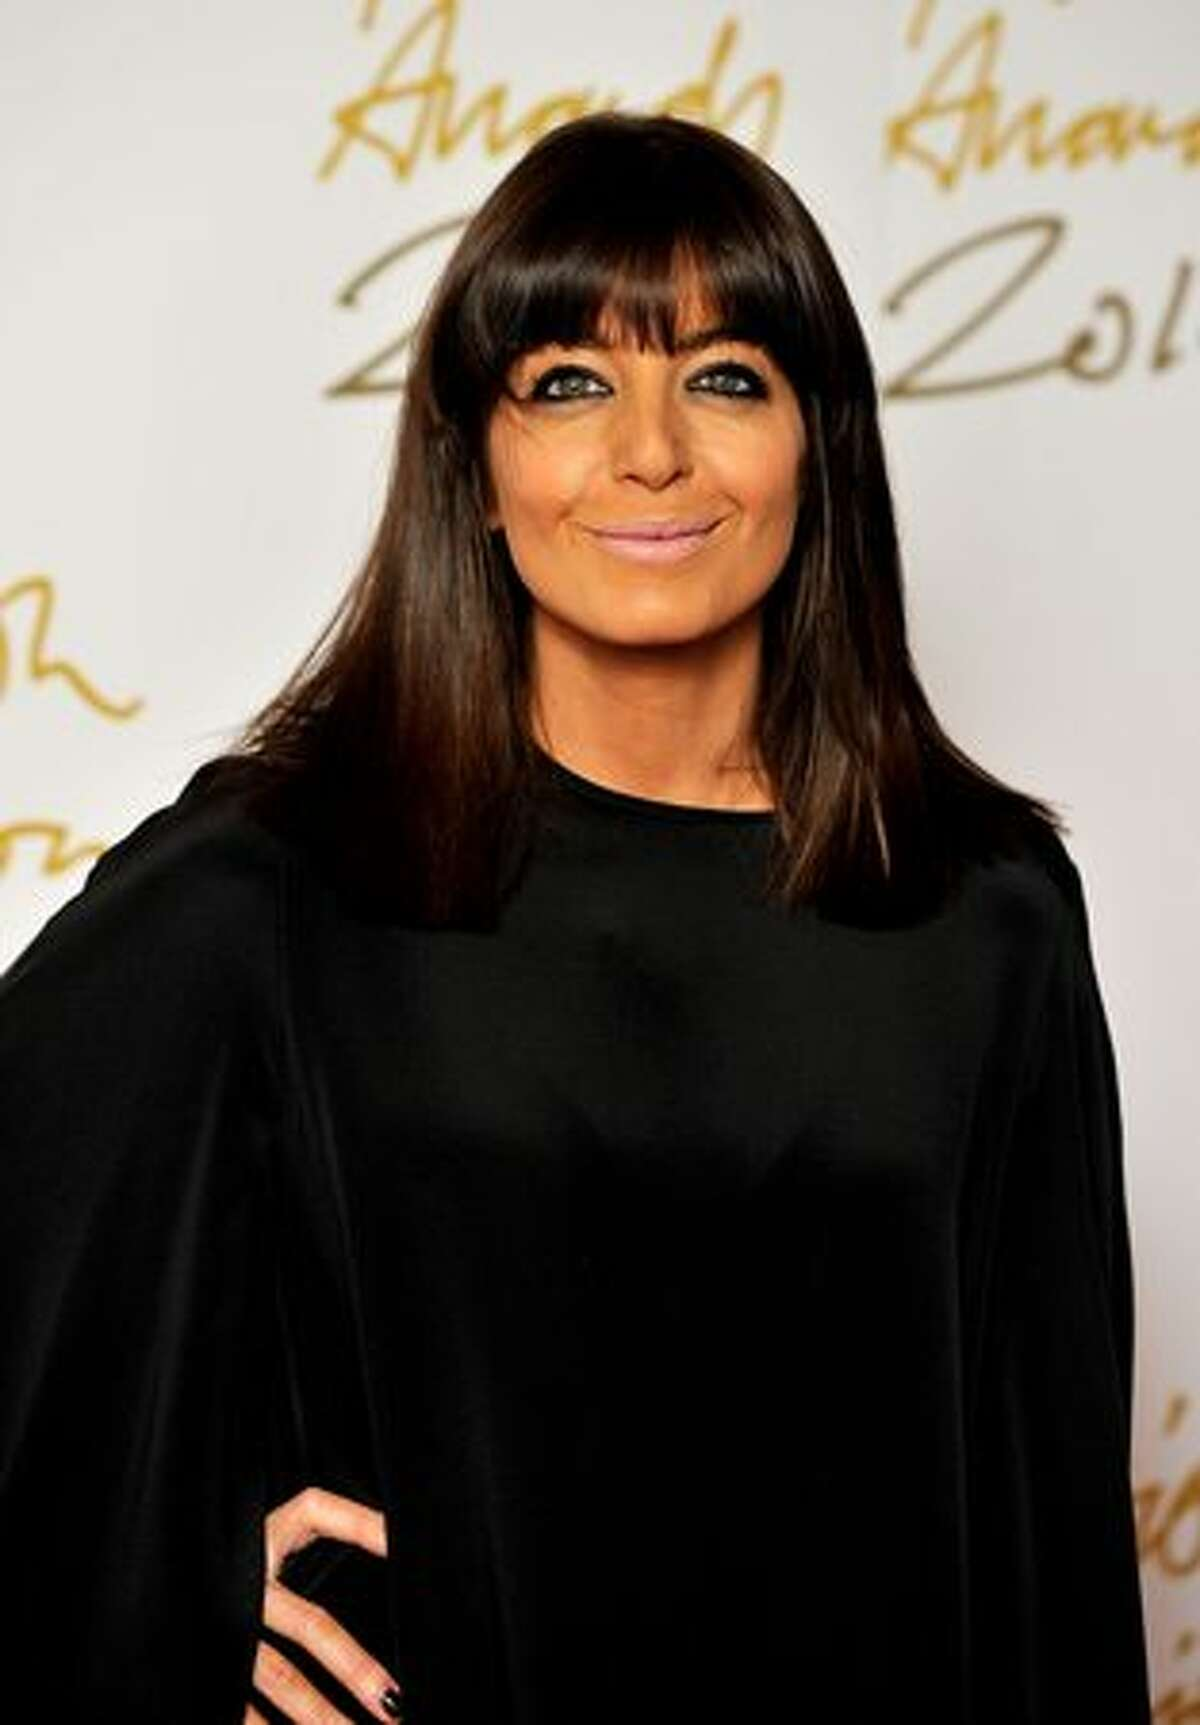 Claudia Winkleman attends the British Fashion Awards at The Savoy in London, England.